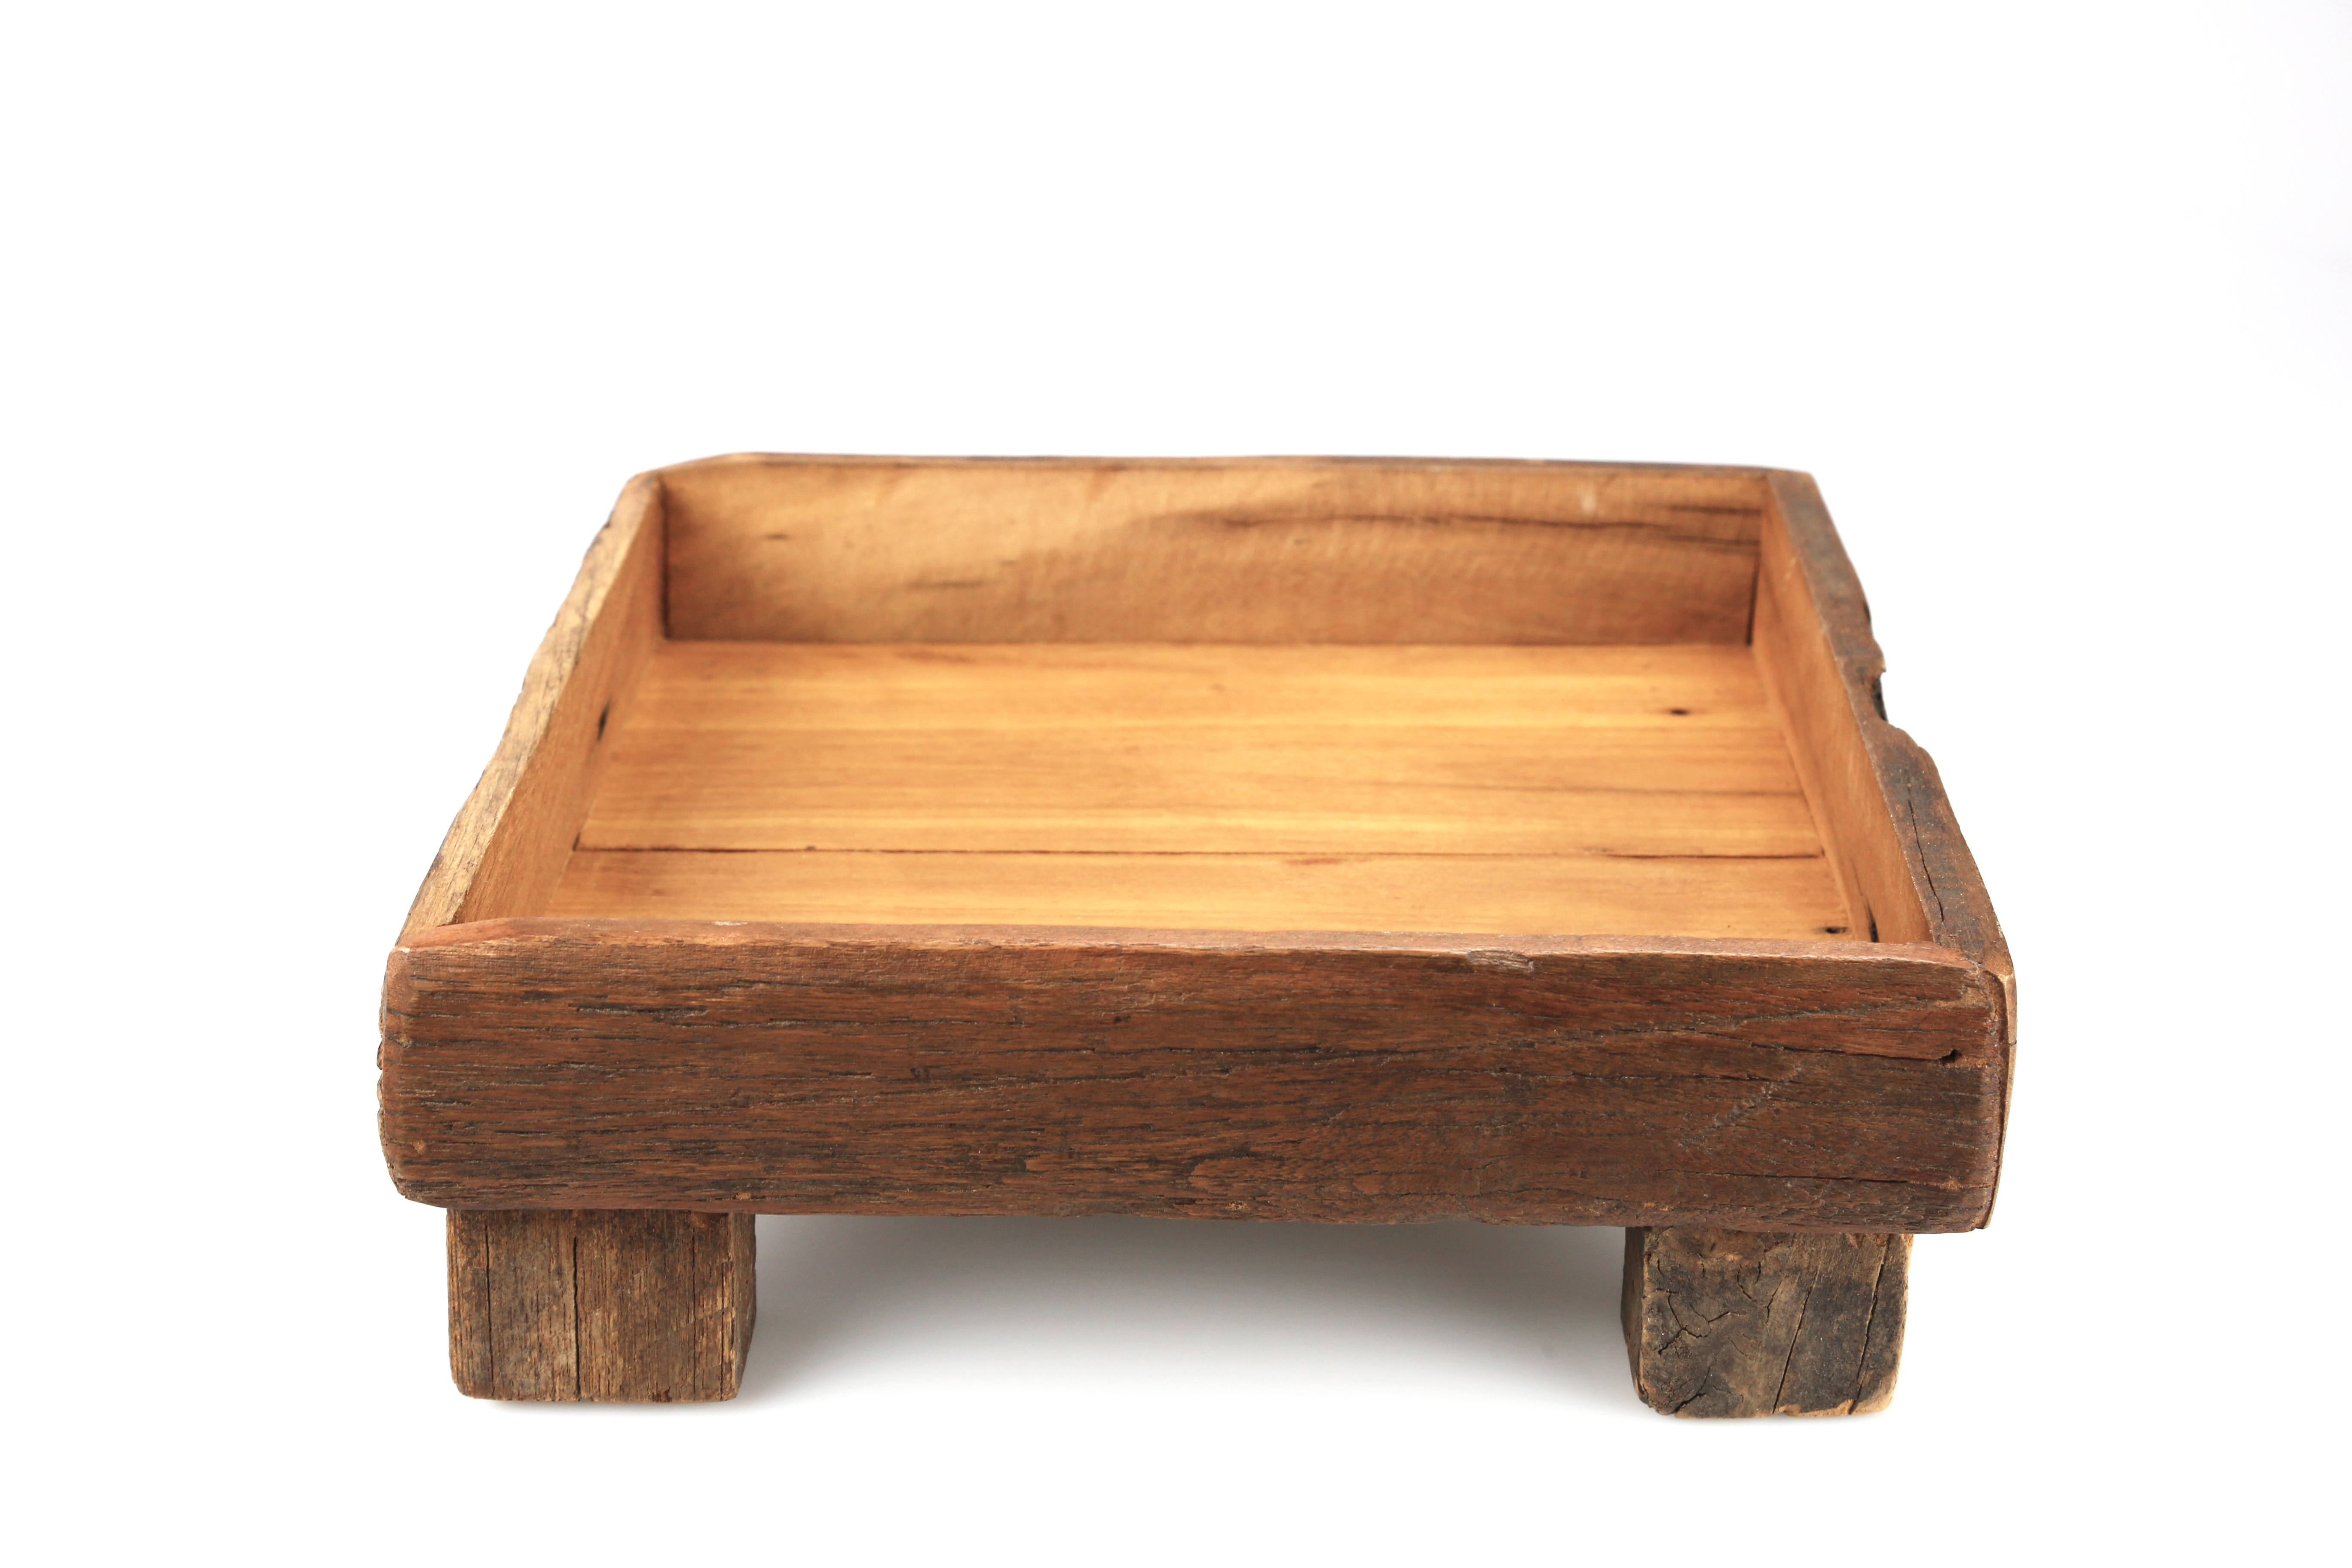 Reclaimed Wood Footed Tray